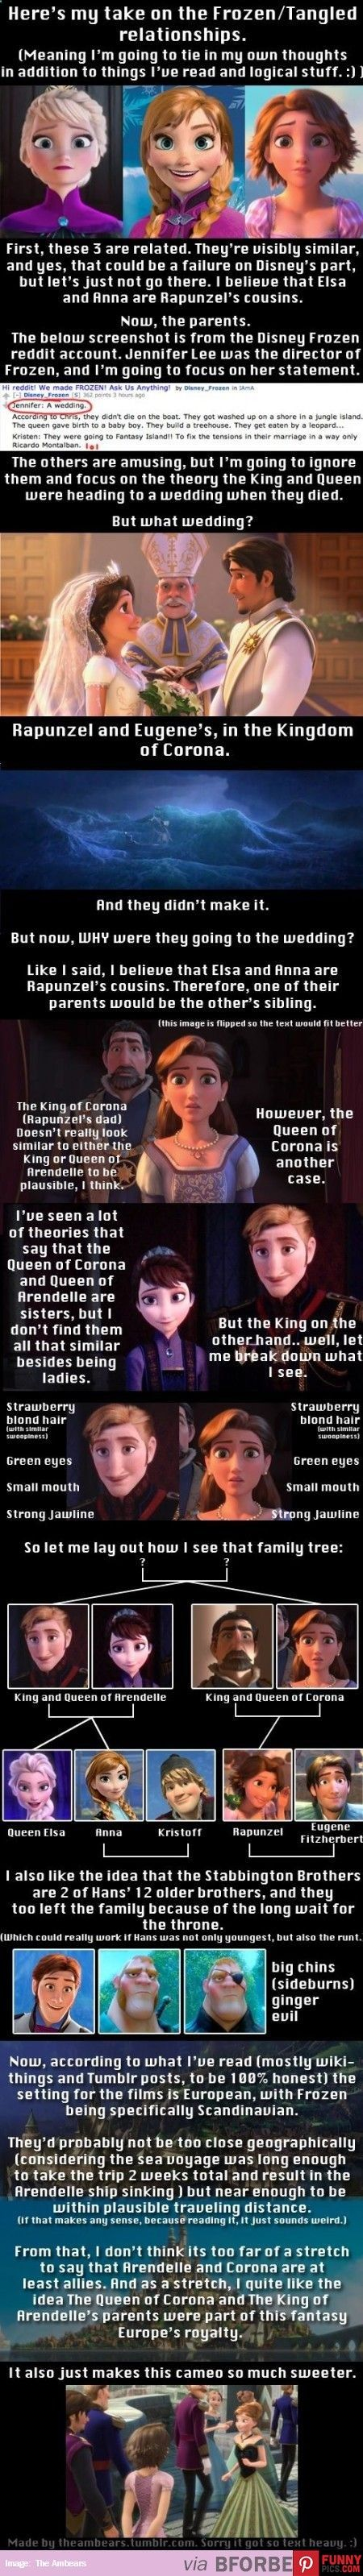 Relationship On Frozen And Tangled… I like this one, cause I had thoughts about Hans being related to the brothers from Tangled too...... And how the queens where sisters.... I think about my Disney stuff